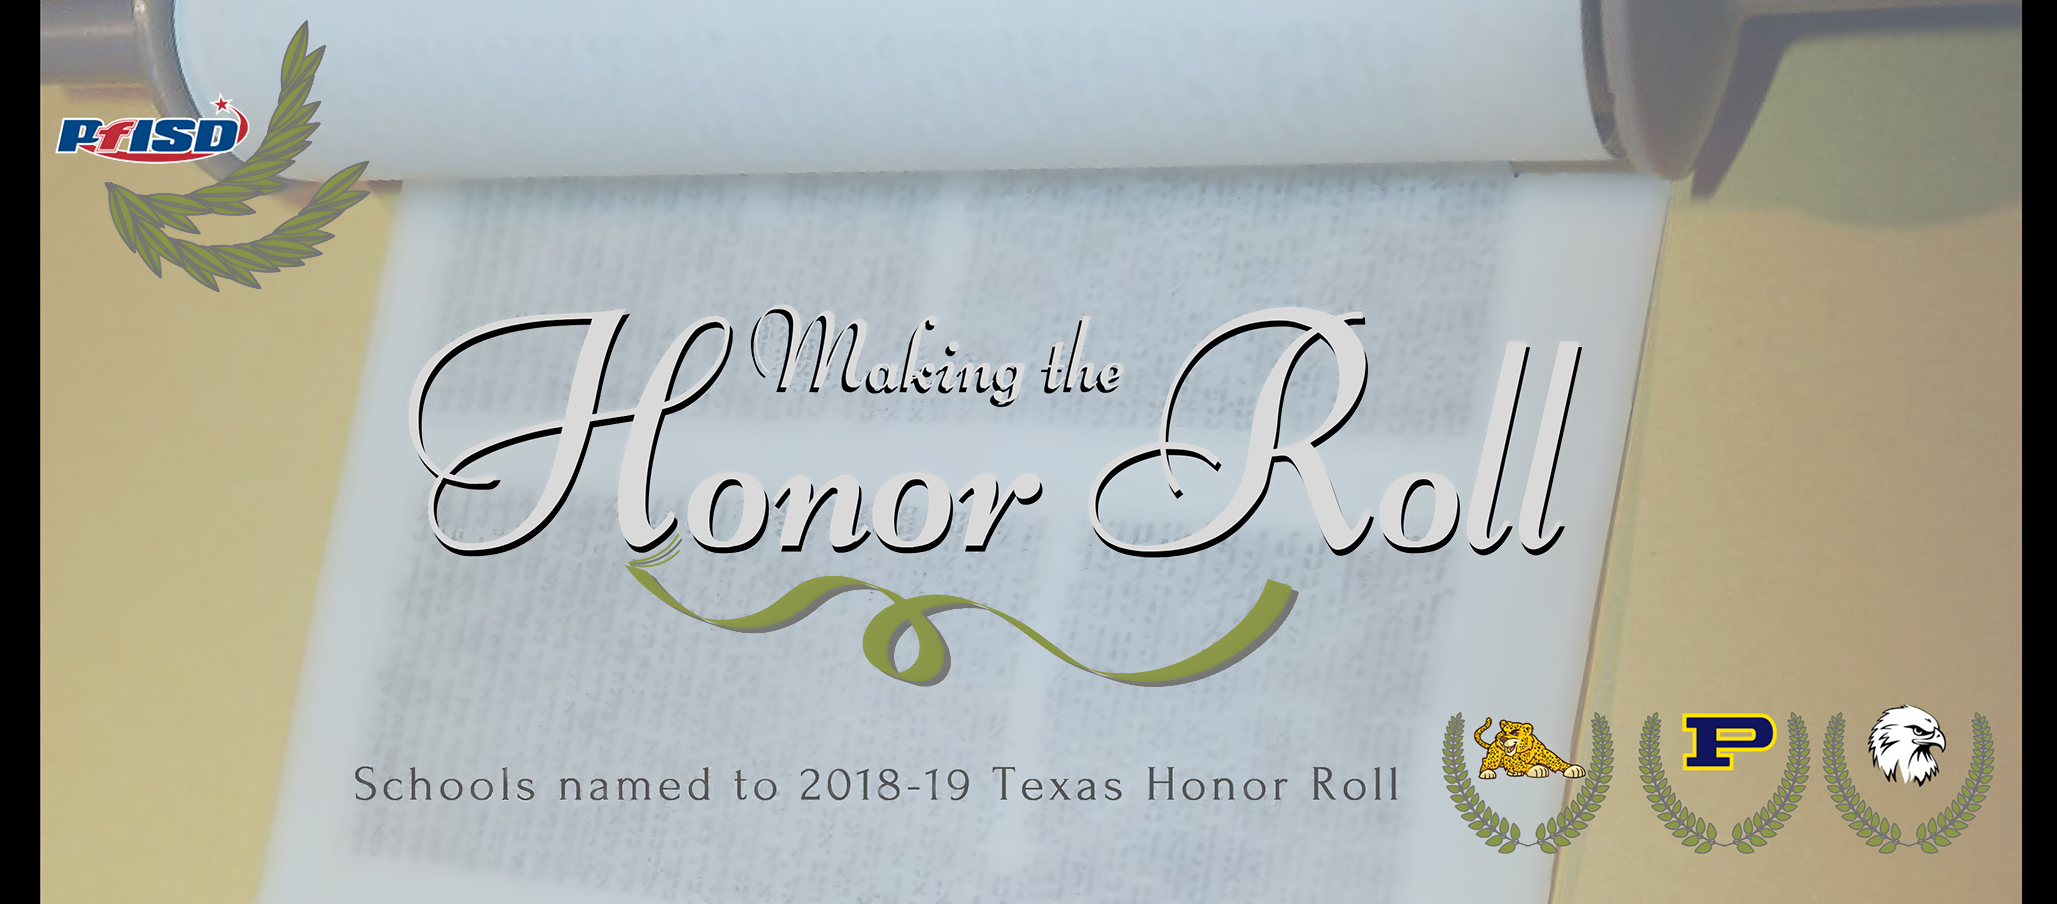 PfISD schools named to Texas Honor Roll